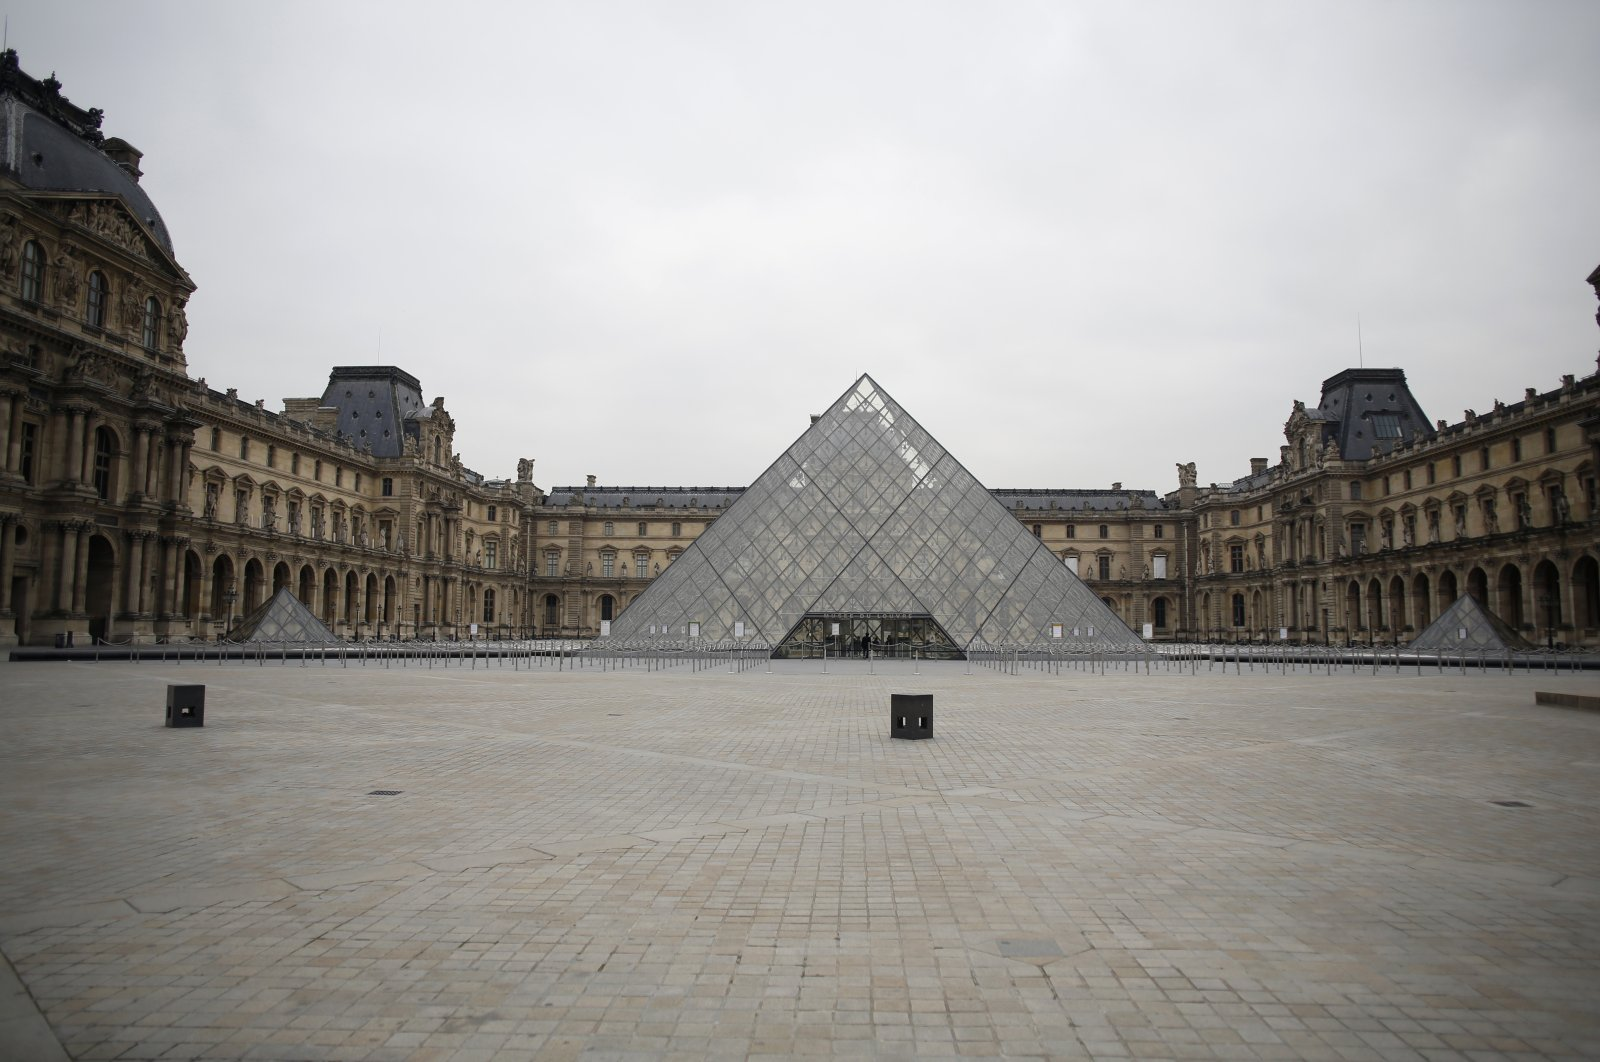 The empty courtyard of the Louvre Museum is seen in Paris, France, March 17, 2020. (AP Photo)